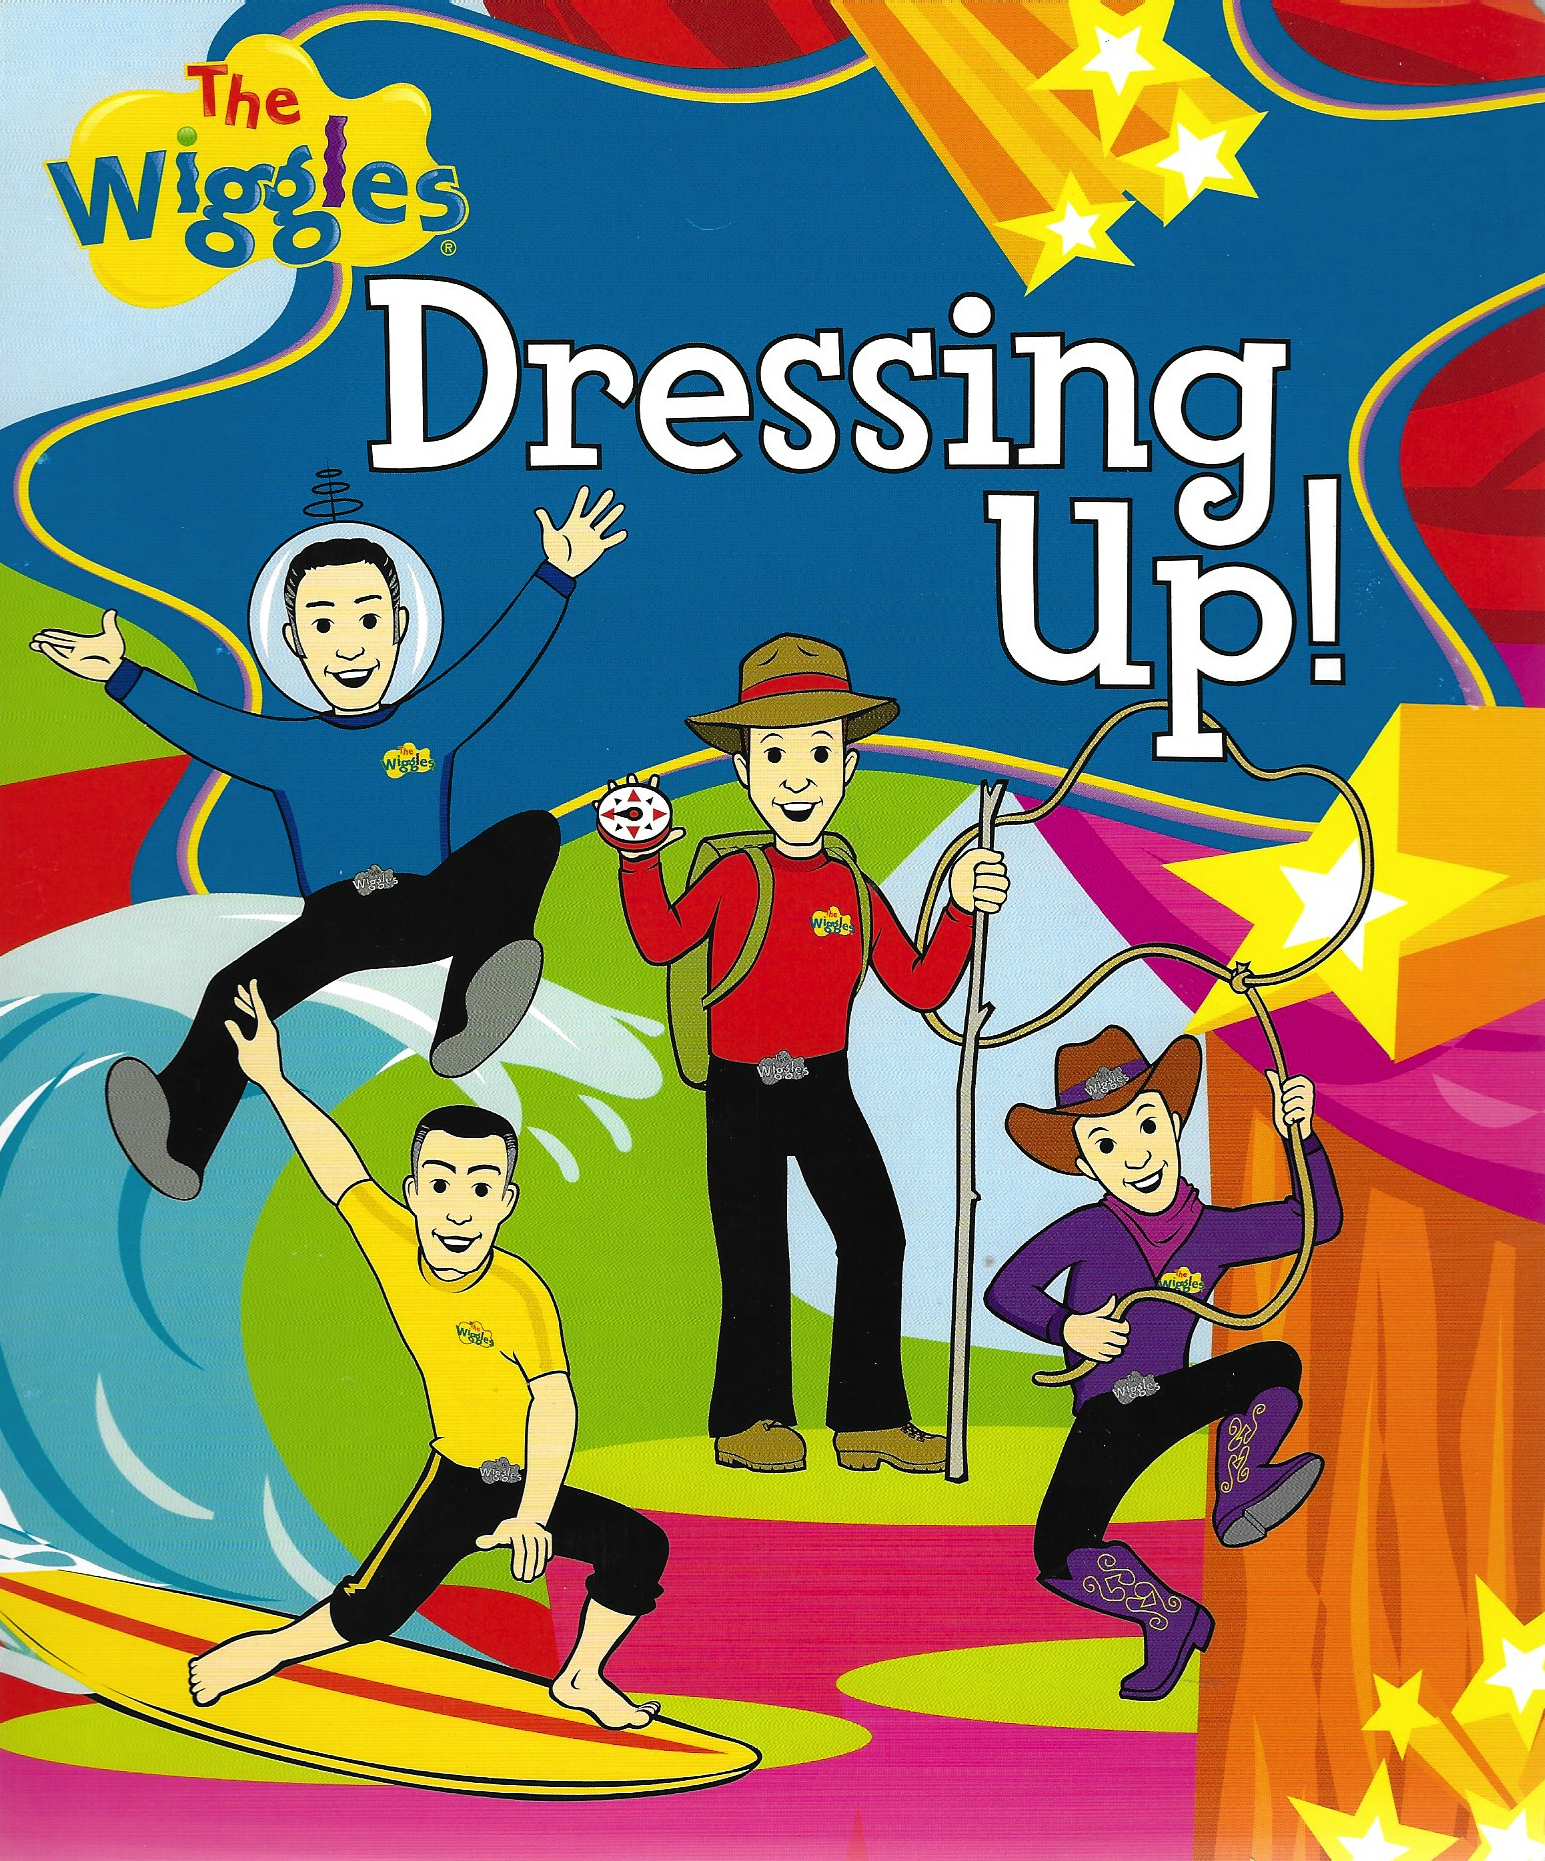 Dressing Up! (book)